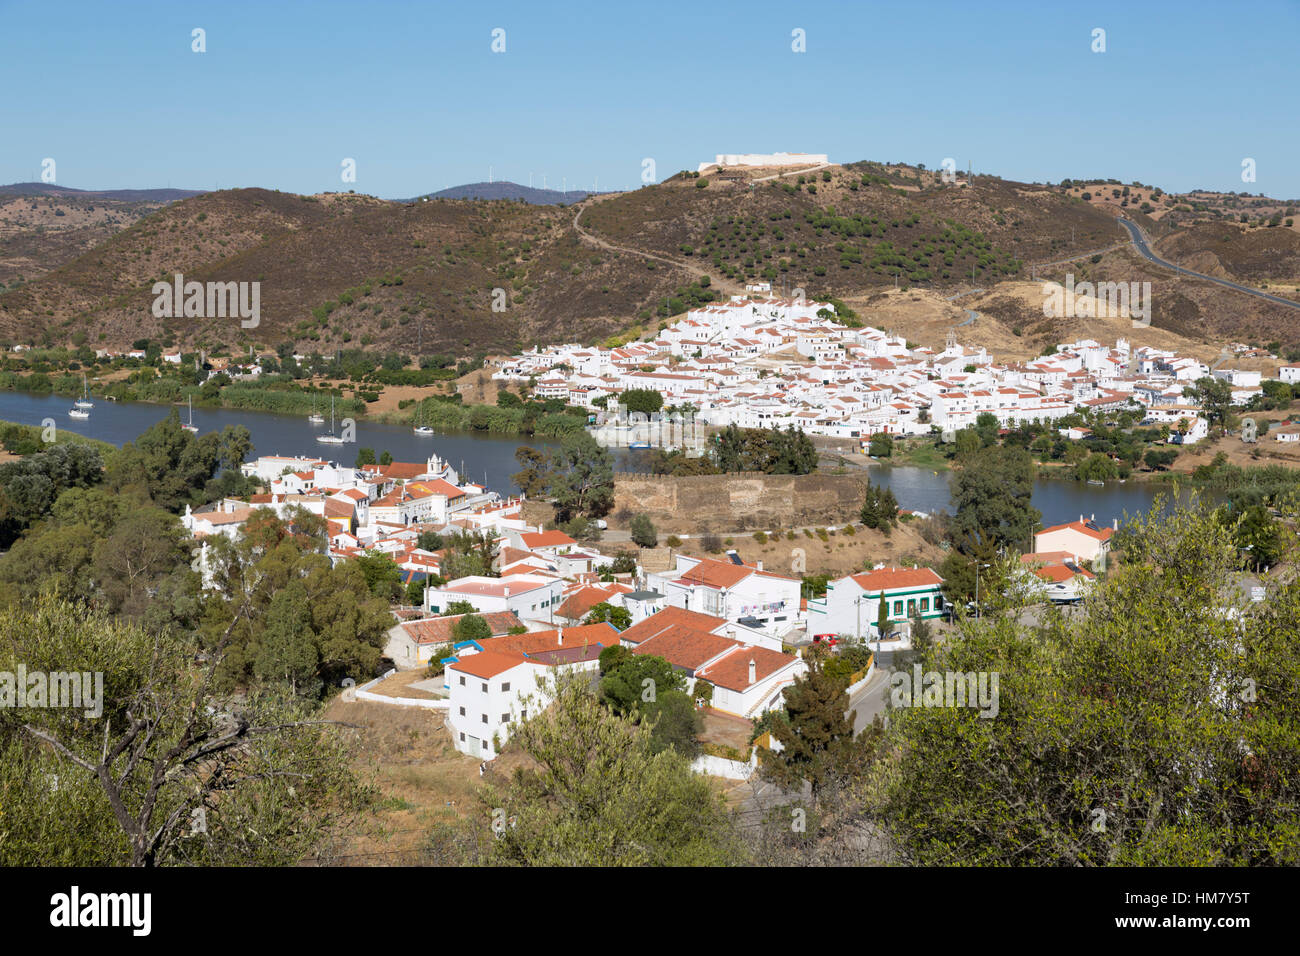 View over Alcoutim and Spanish village of Sanlucar de Guadiana on Rio Guadiana river, Alcoutim, Algarve, Portugal, - Stock Image